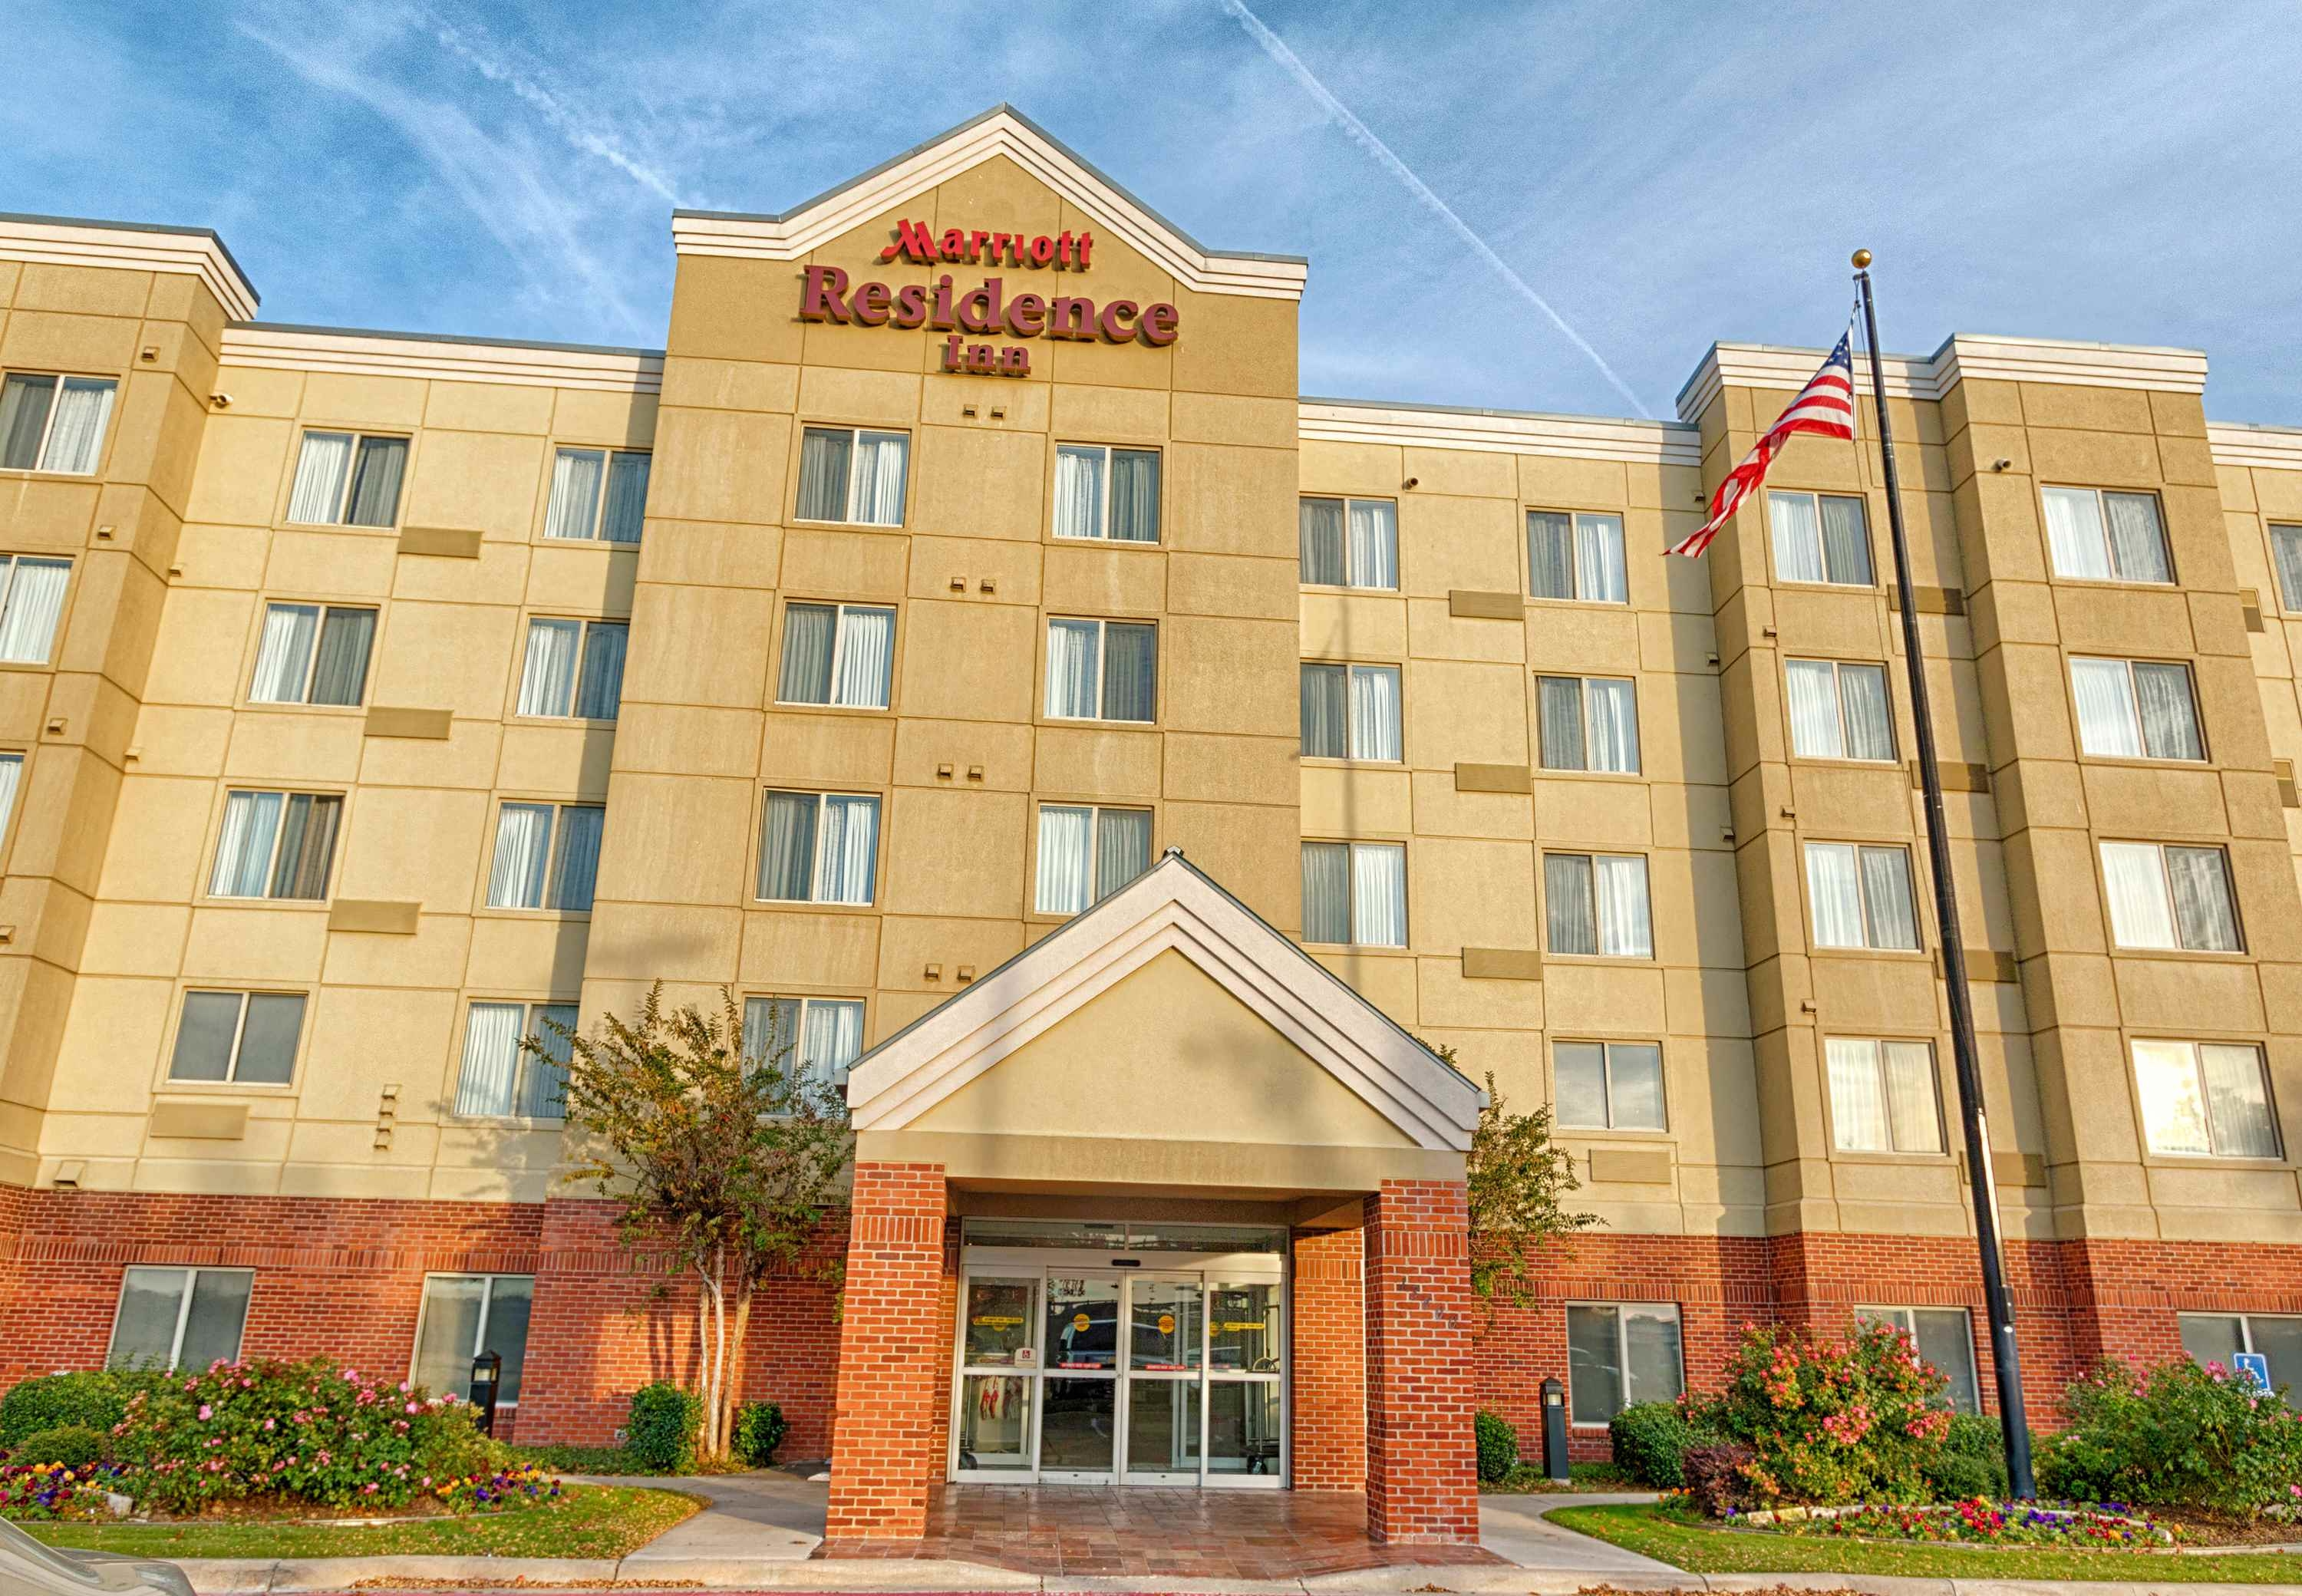 Residence Inn by Marriott Fort Worth Alliance Airport image 1